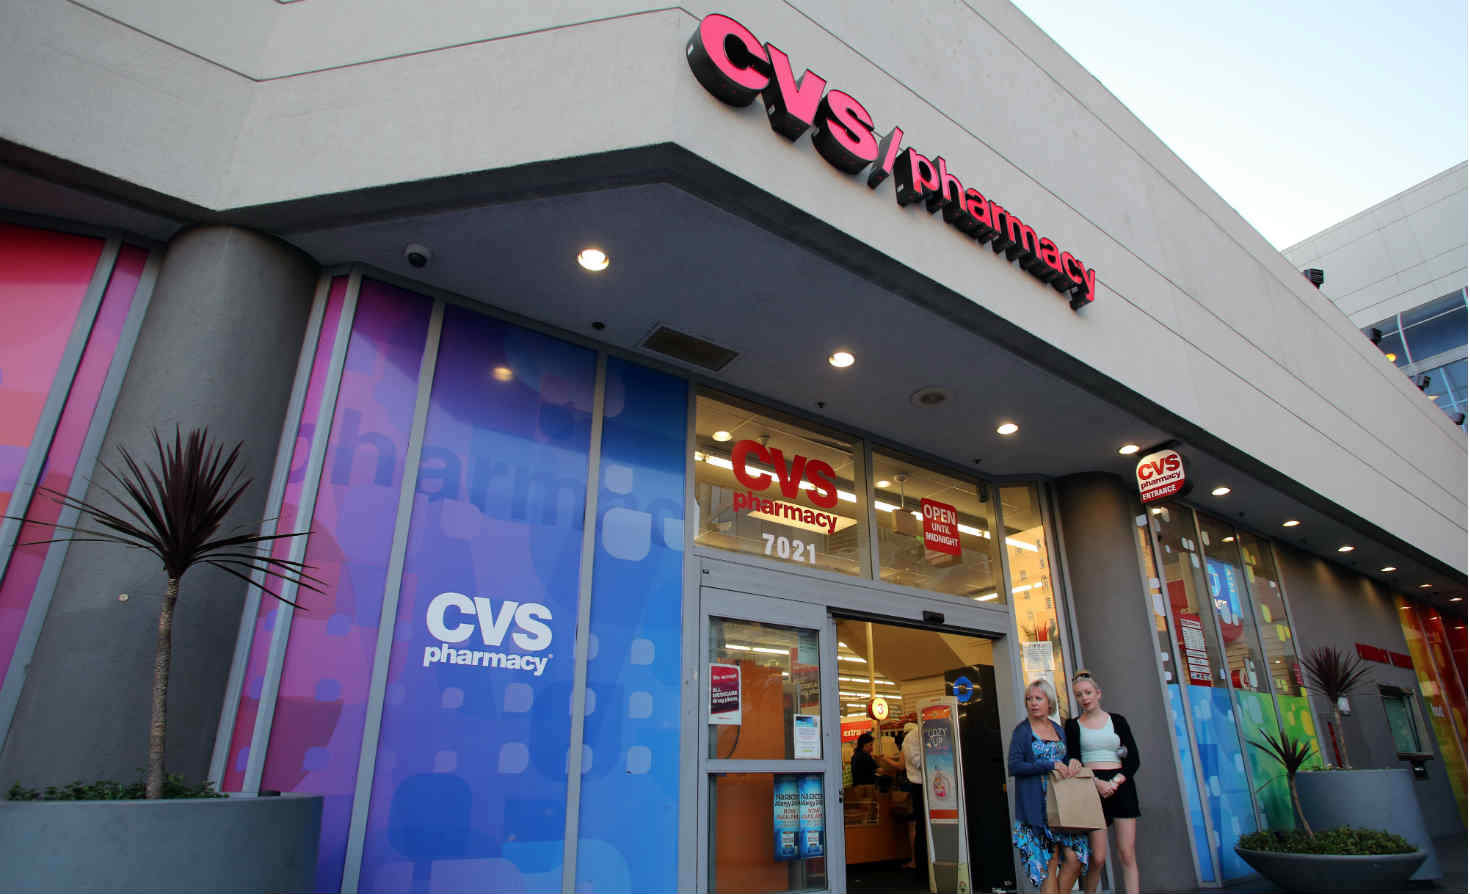 CVS store in North Hollywood, California